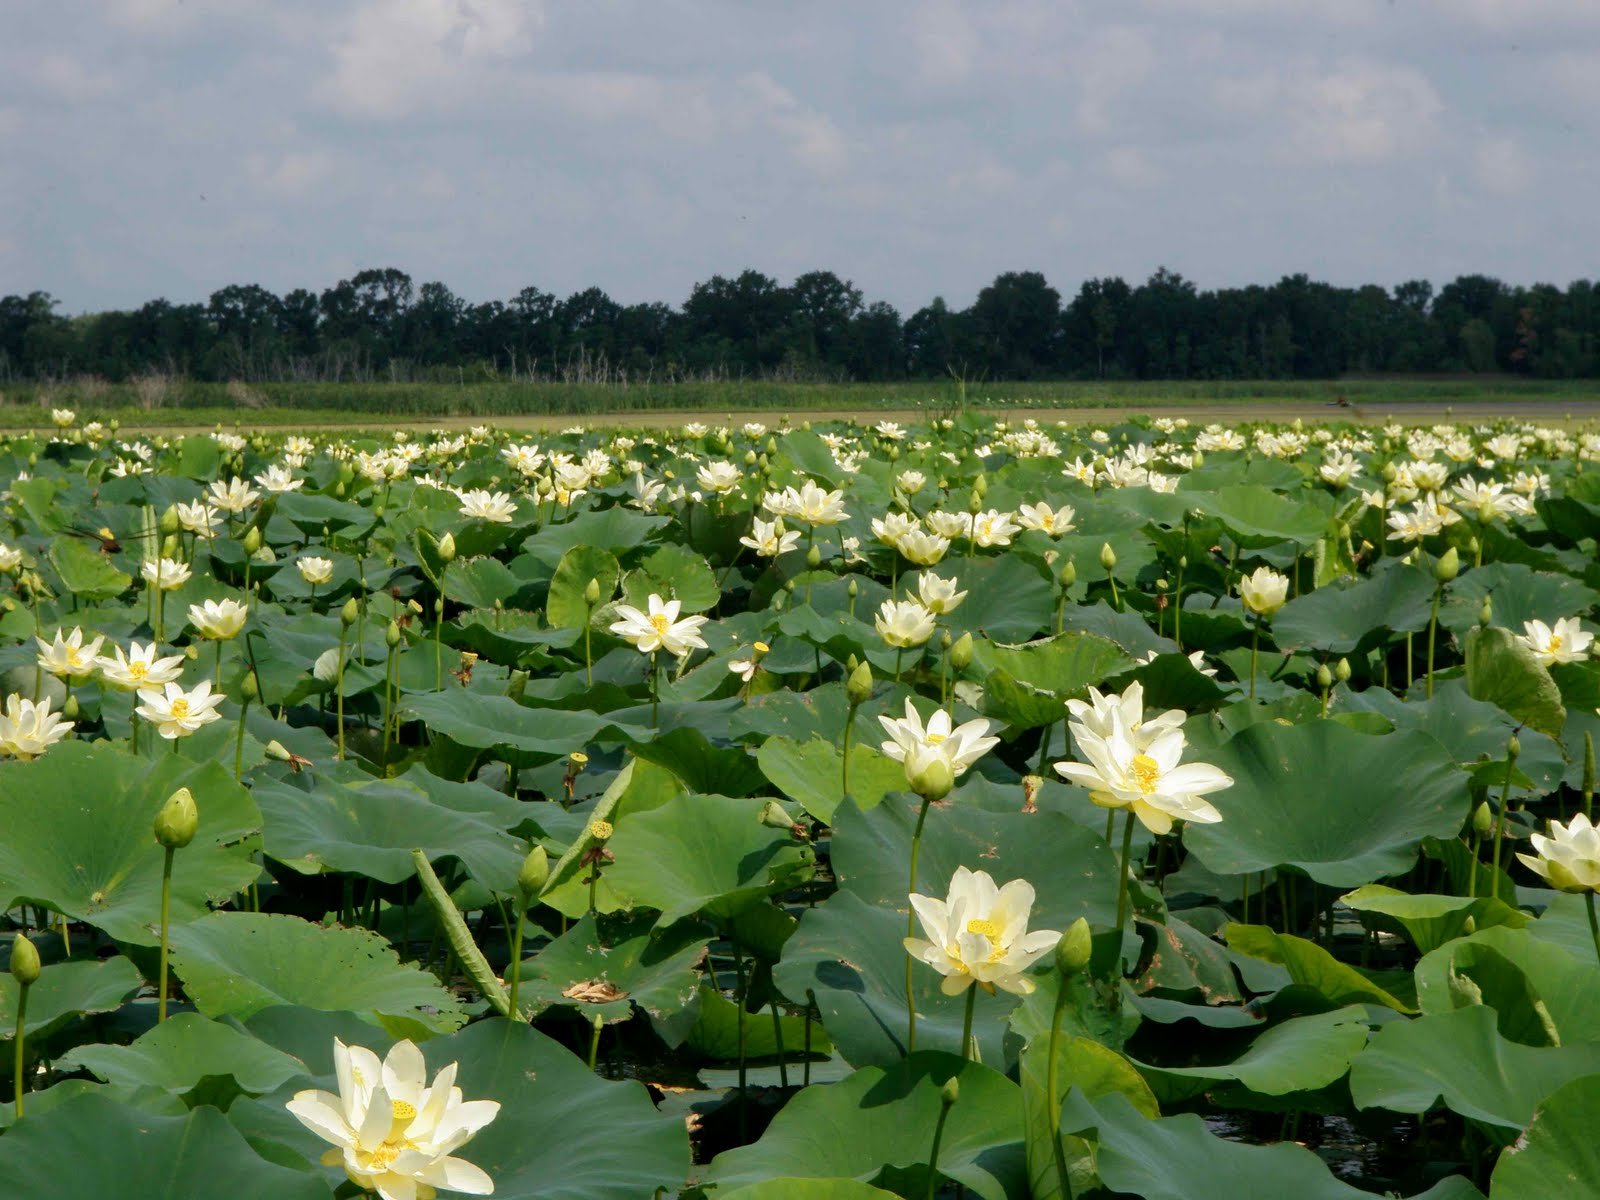 Sue ives mandalay national wildlife refuge smell of lotus blossoms theyre big blooms 6 across each with lots of acorn sized edible seeds imagine a sunflower with really really big seeds izmirmasajfo